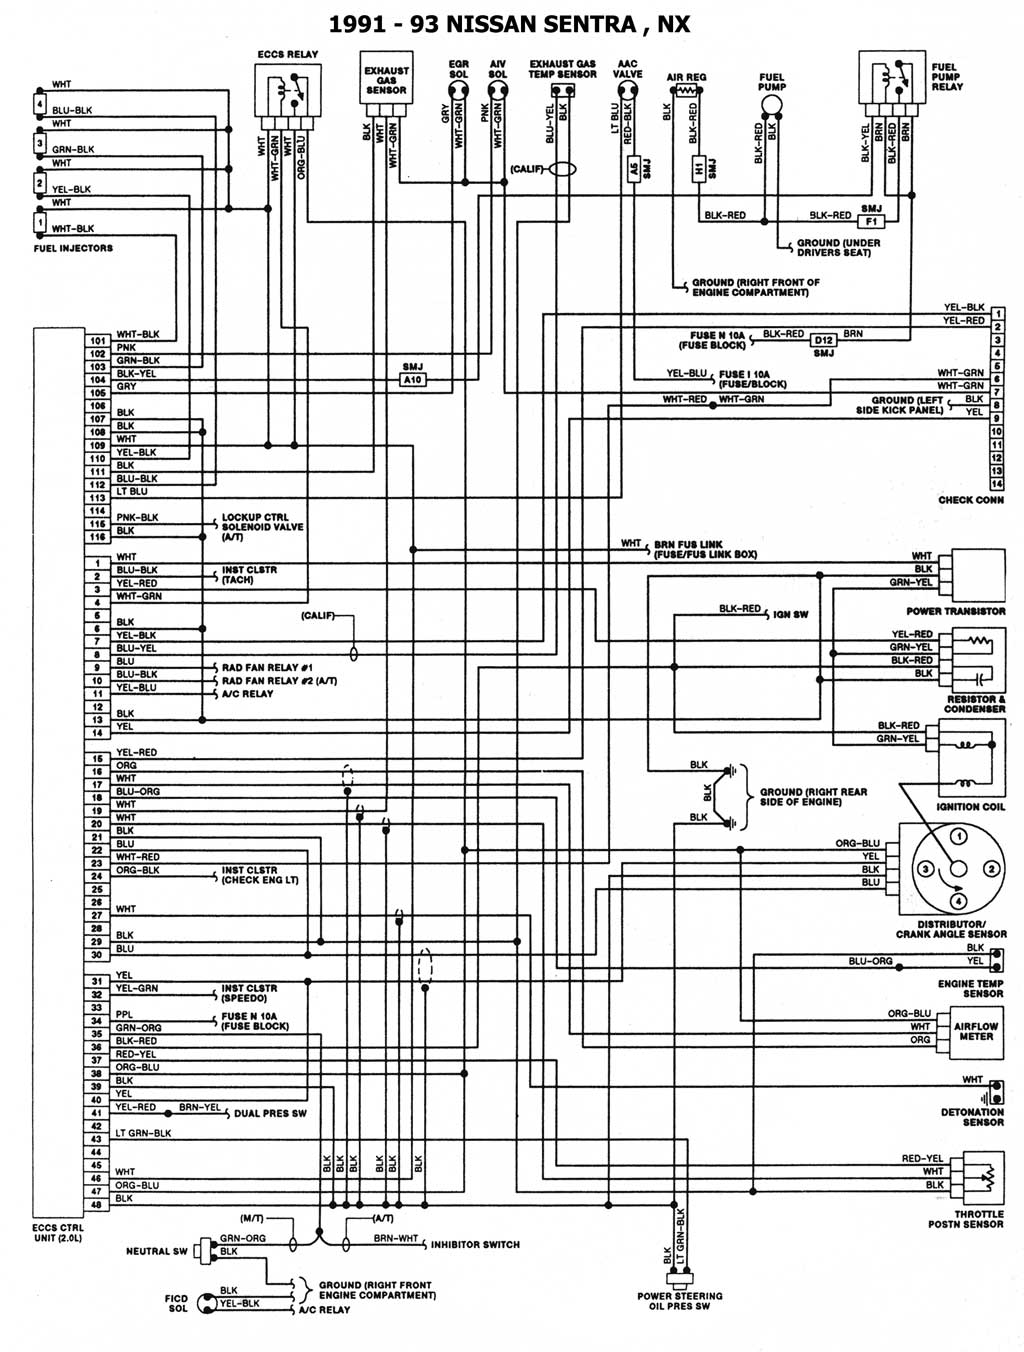 2004 Jeep Grand Cherokee Cooling Fan Wiring Diagram : Wiring diagram for nissan sentra radiator fans